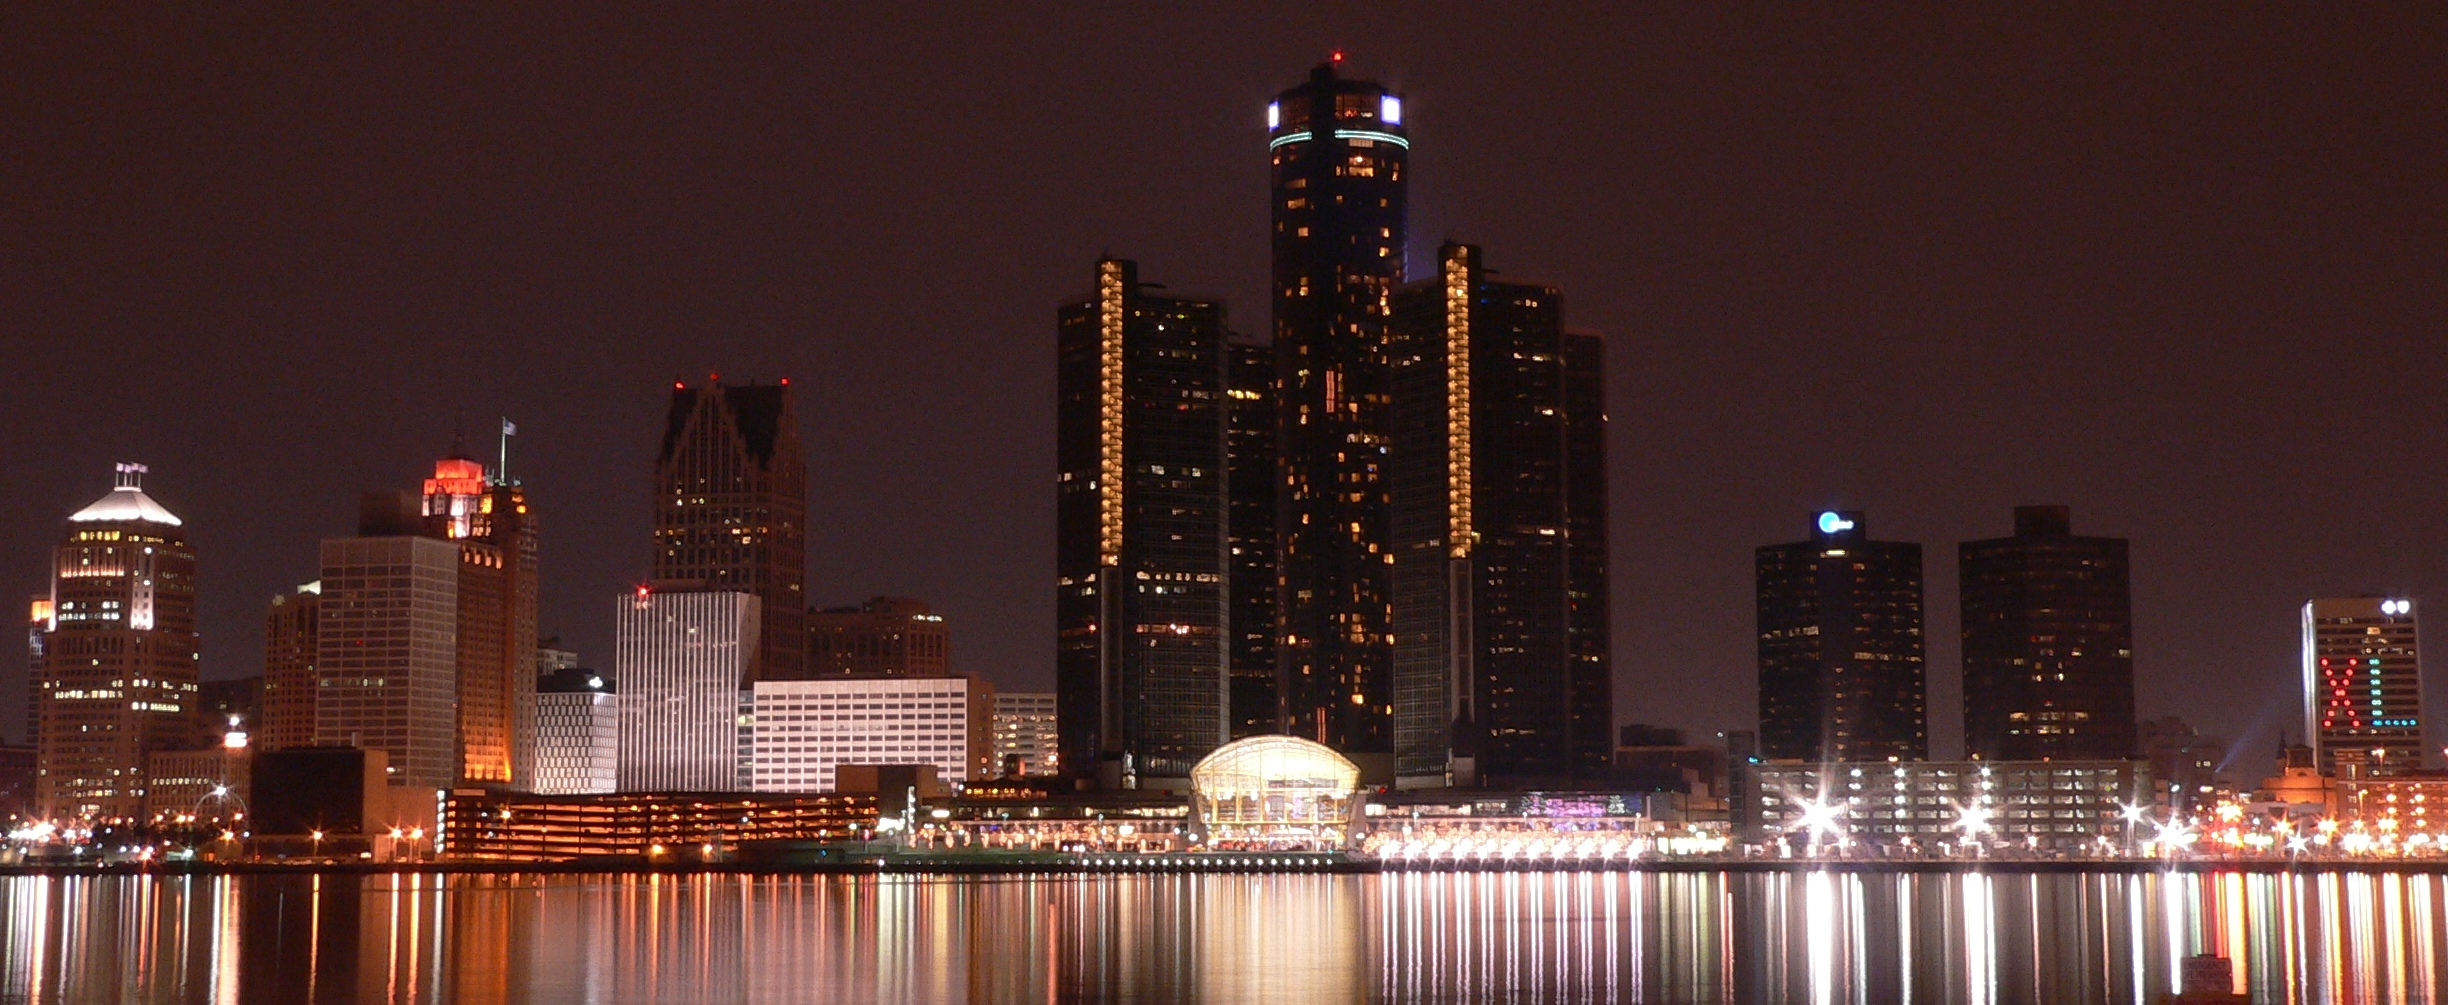 Detroit. (Image from Wikimedia.)